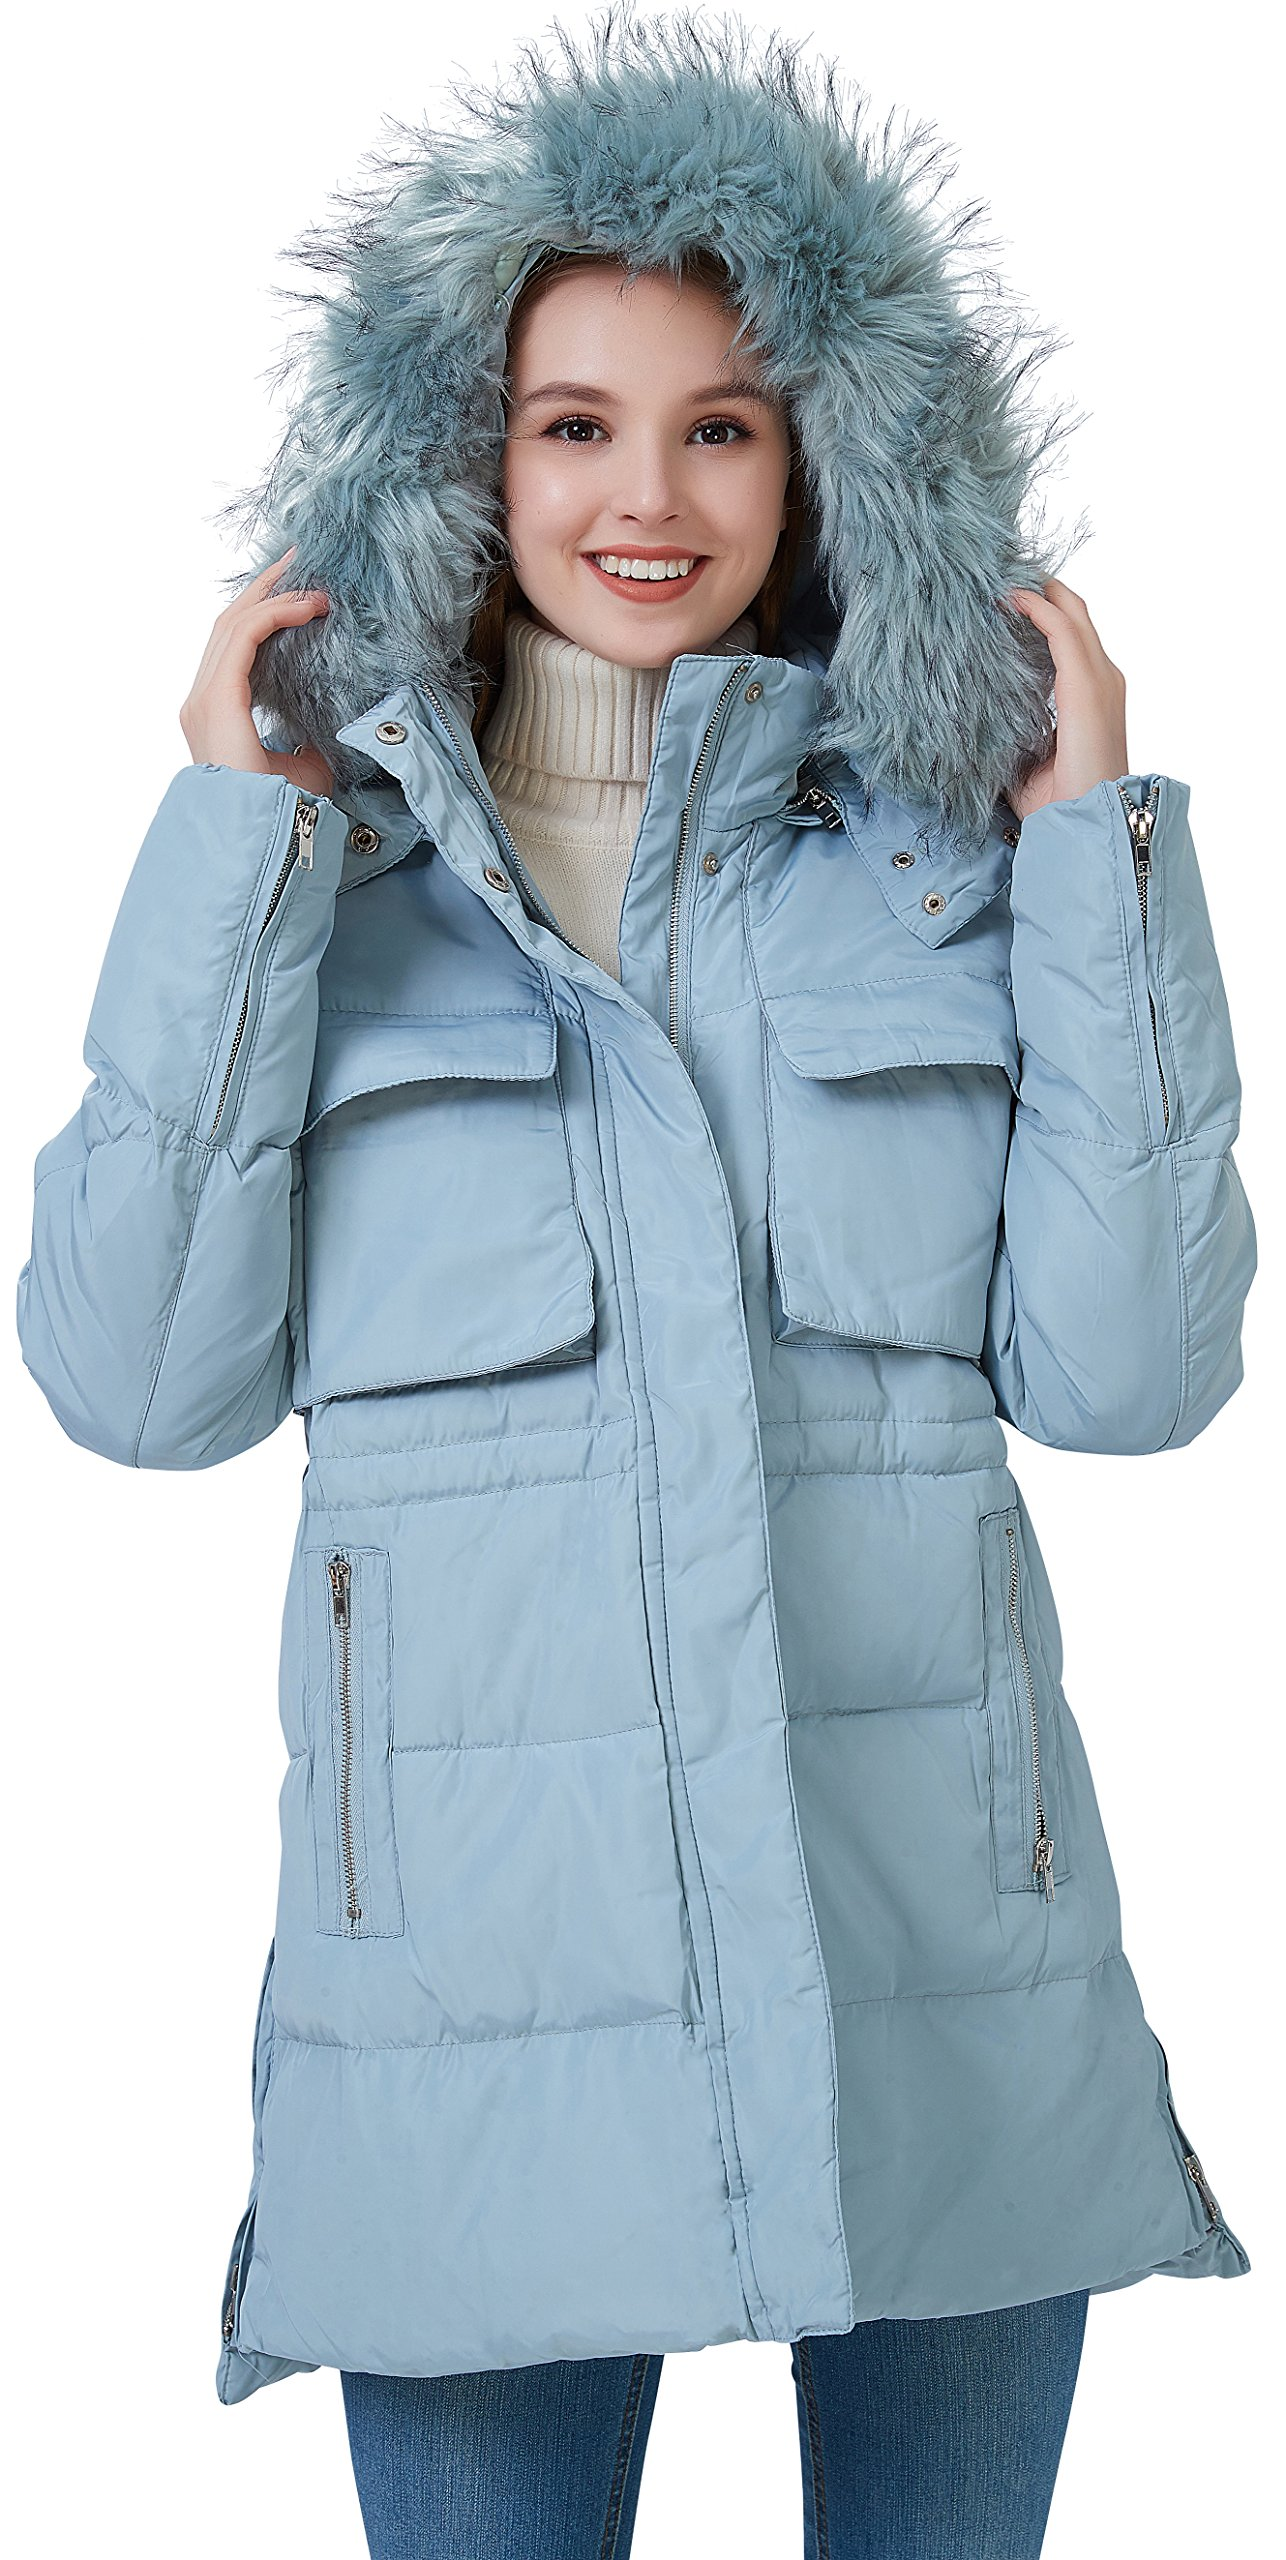 fashciaga Women's Faux Fur Hood Winter Quilted Coat Puffer Lightweight Down Parka Jacket Medium